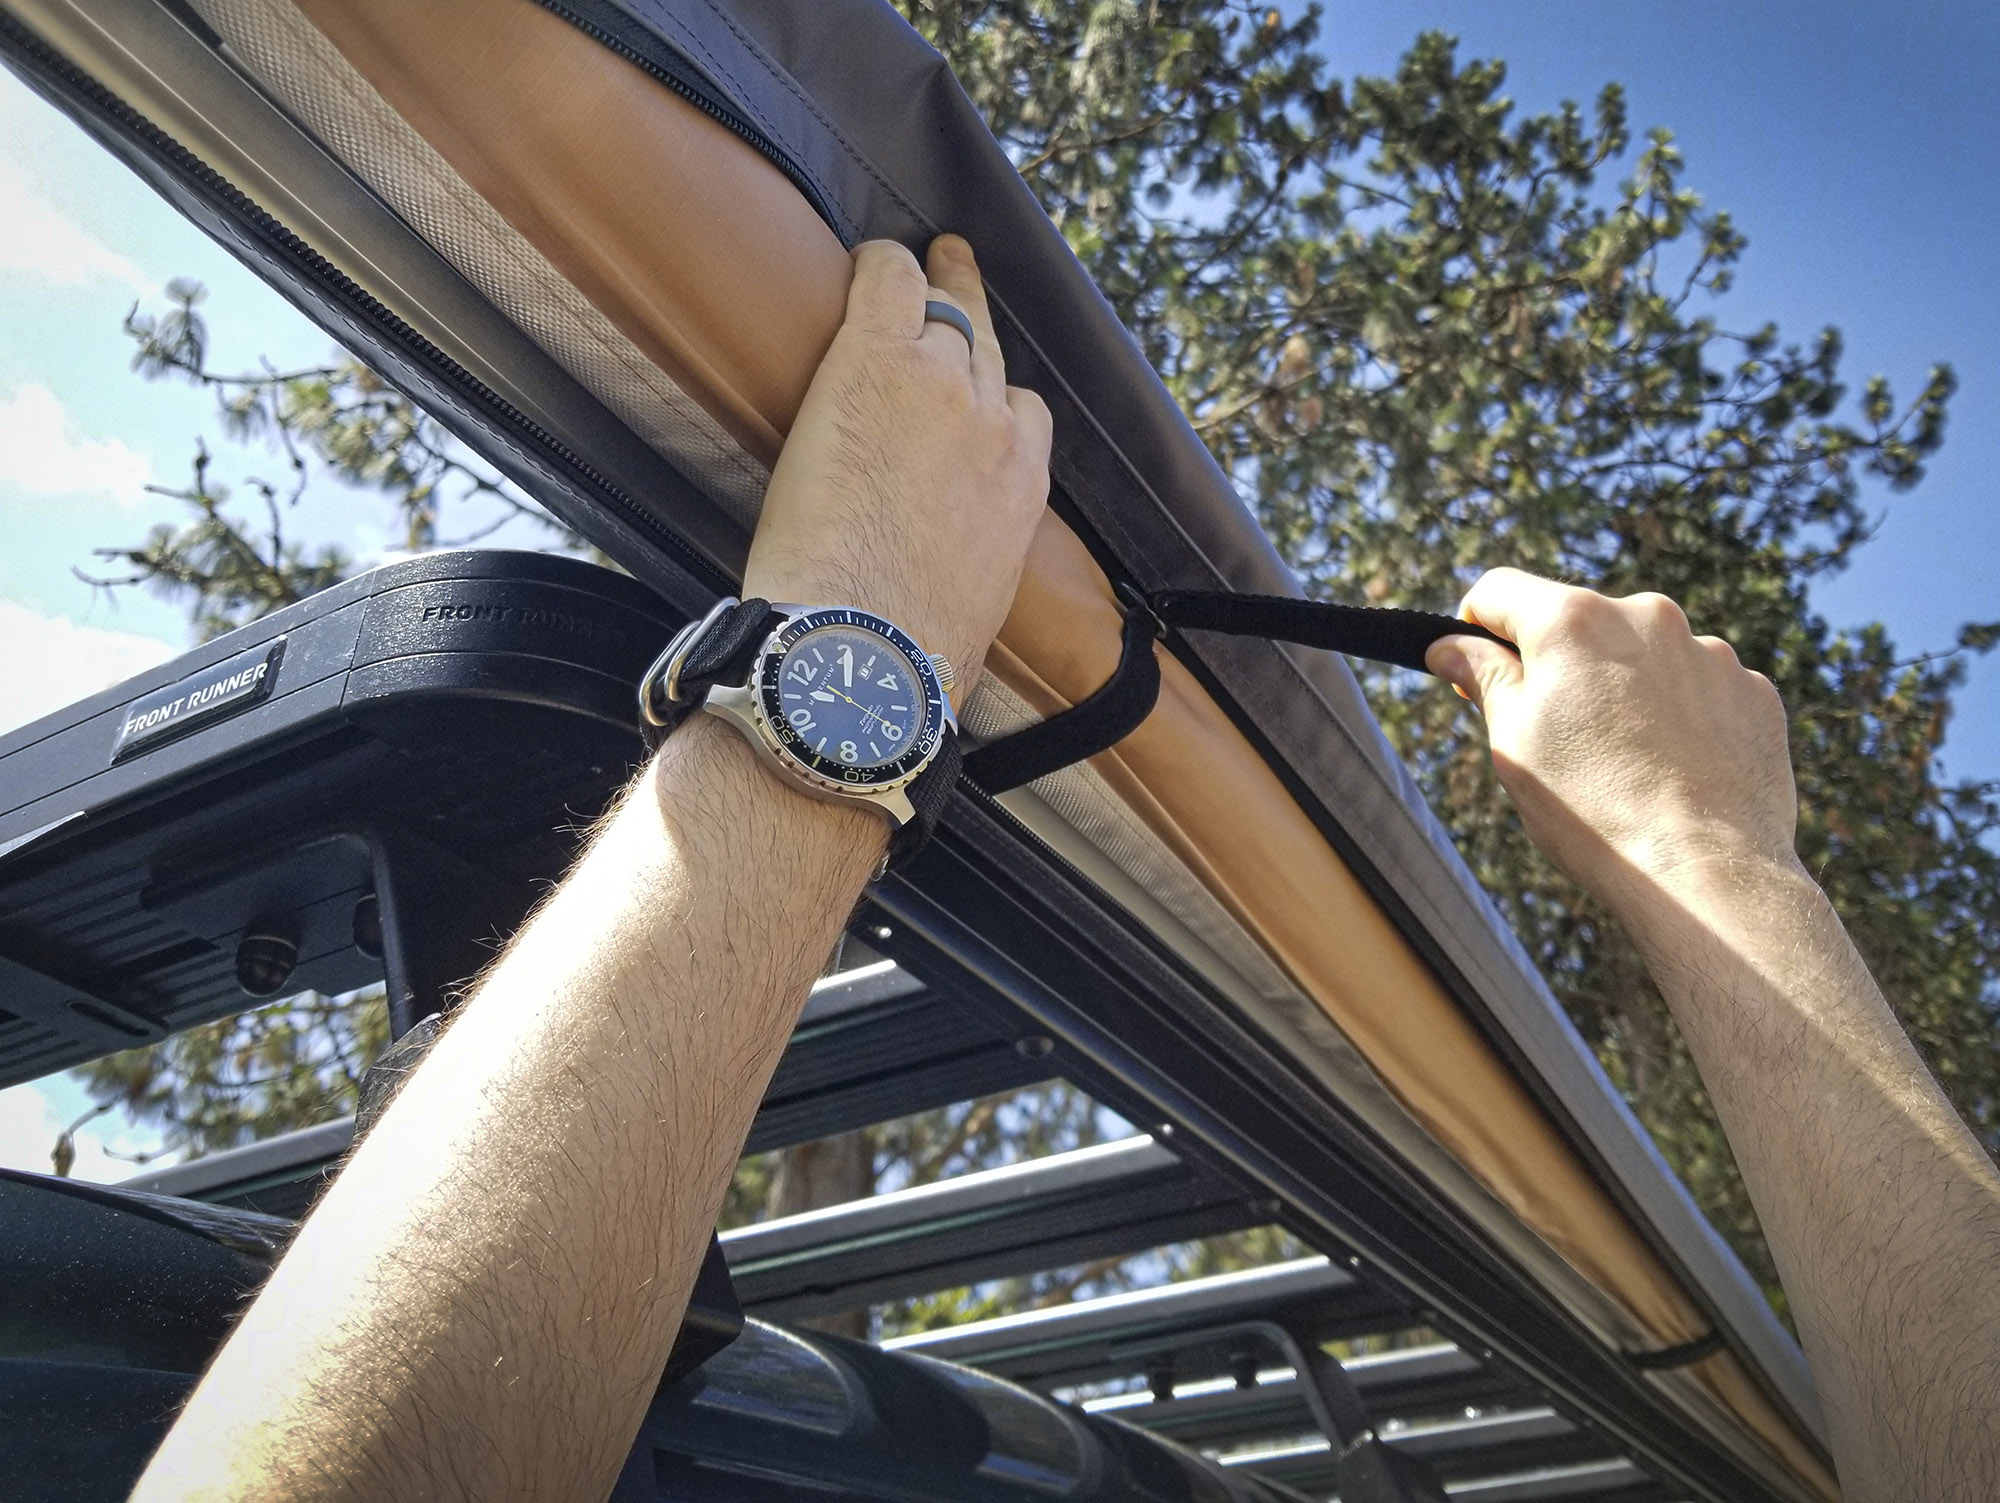 The ARB Touring Awning Kit with Light features a gray waterproof housing and interior Velcro to keep it in place when stowed.